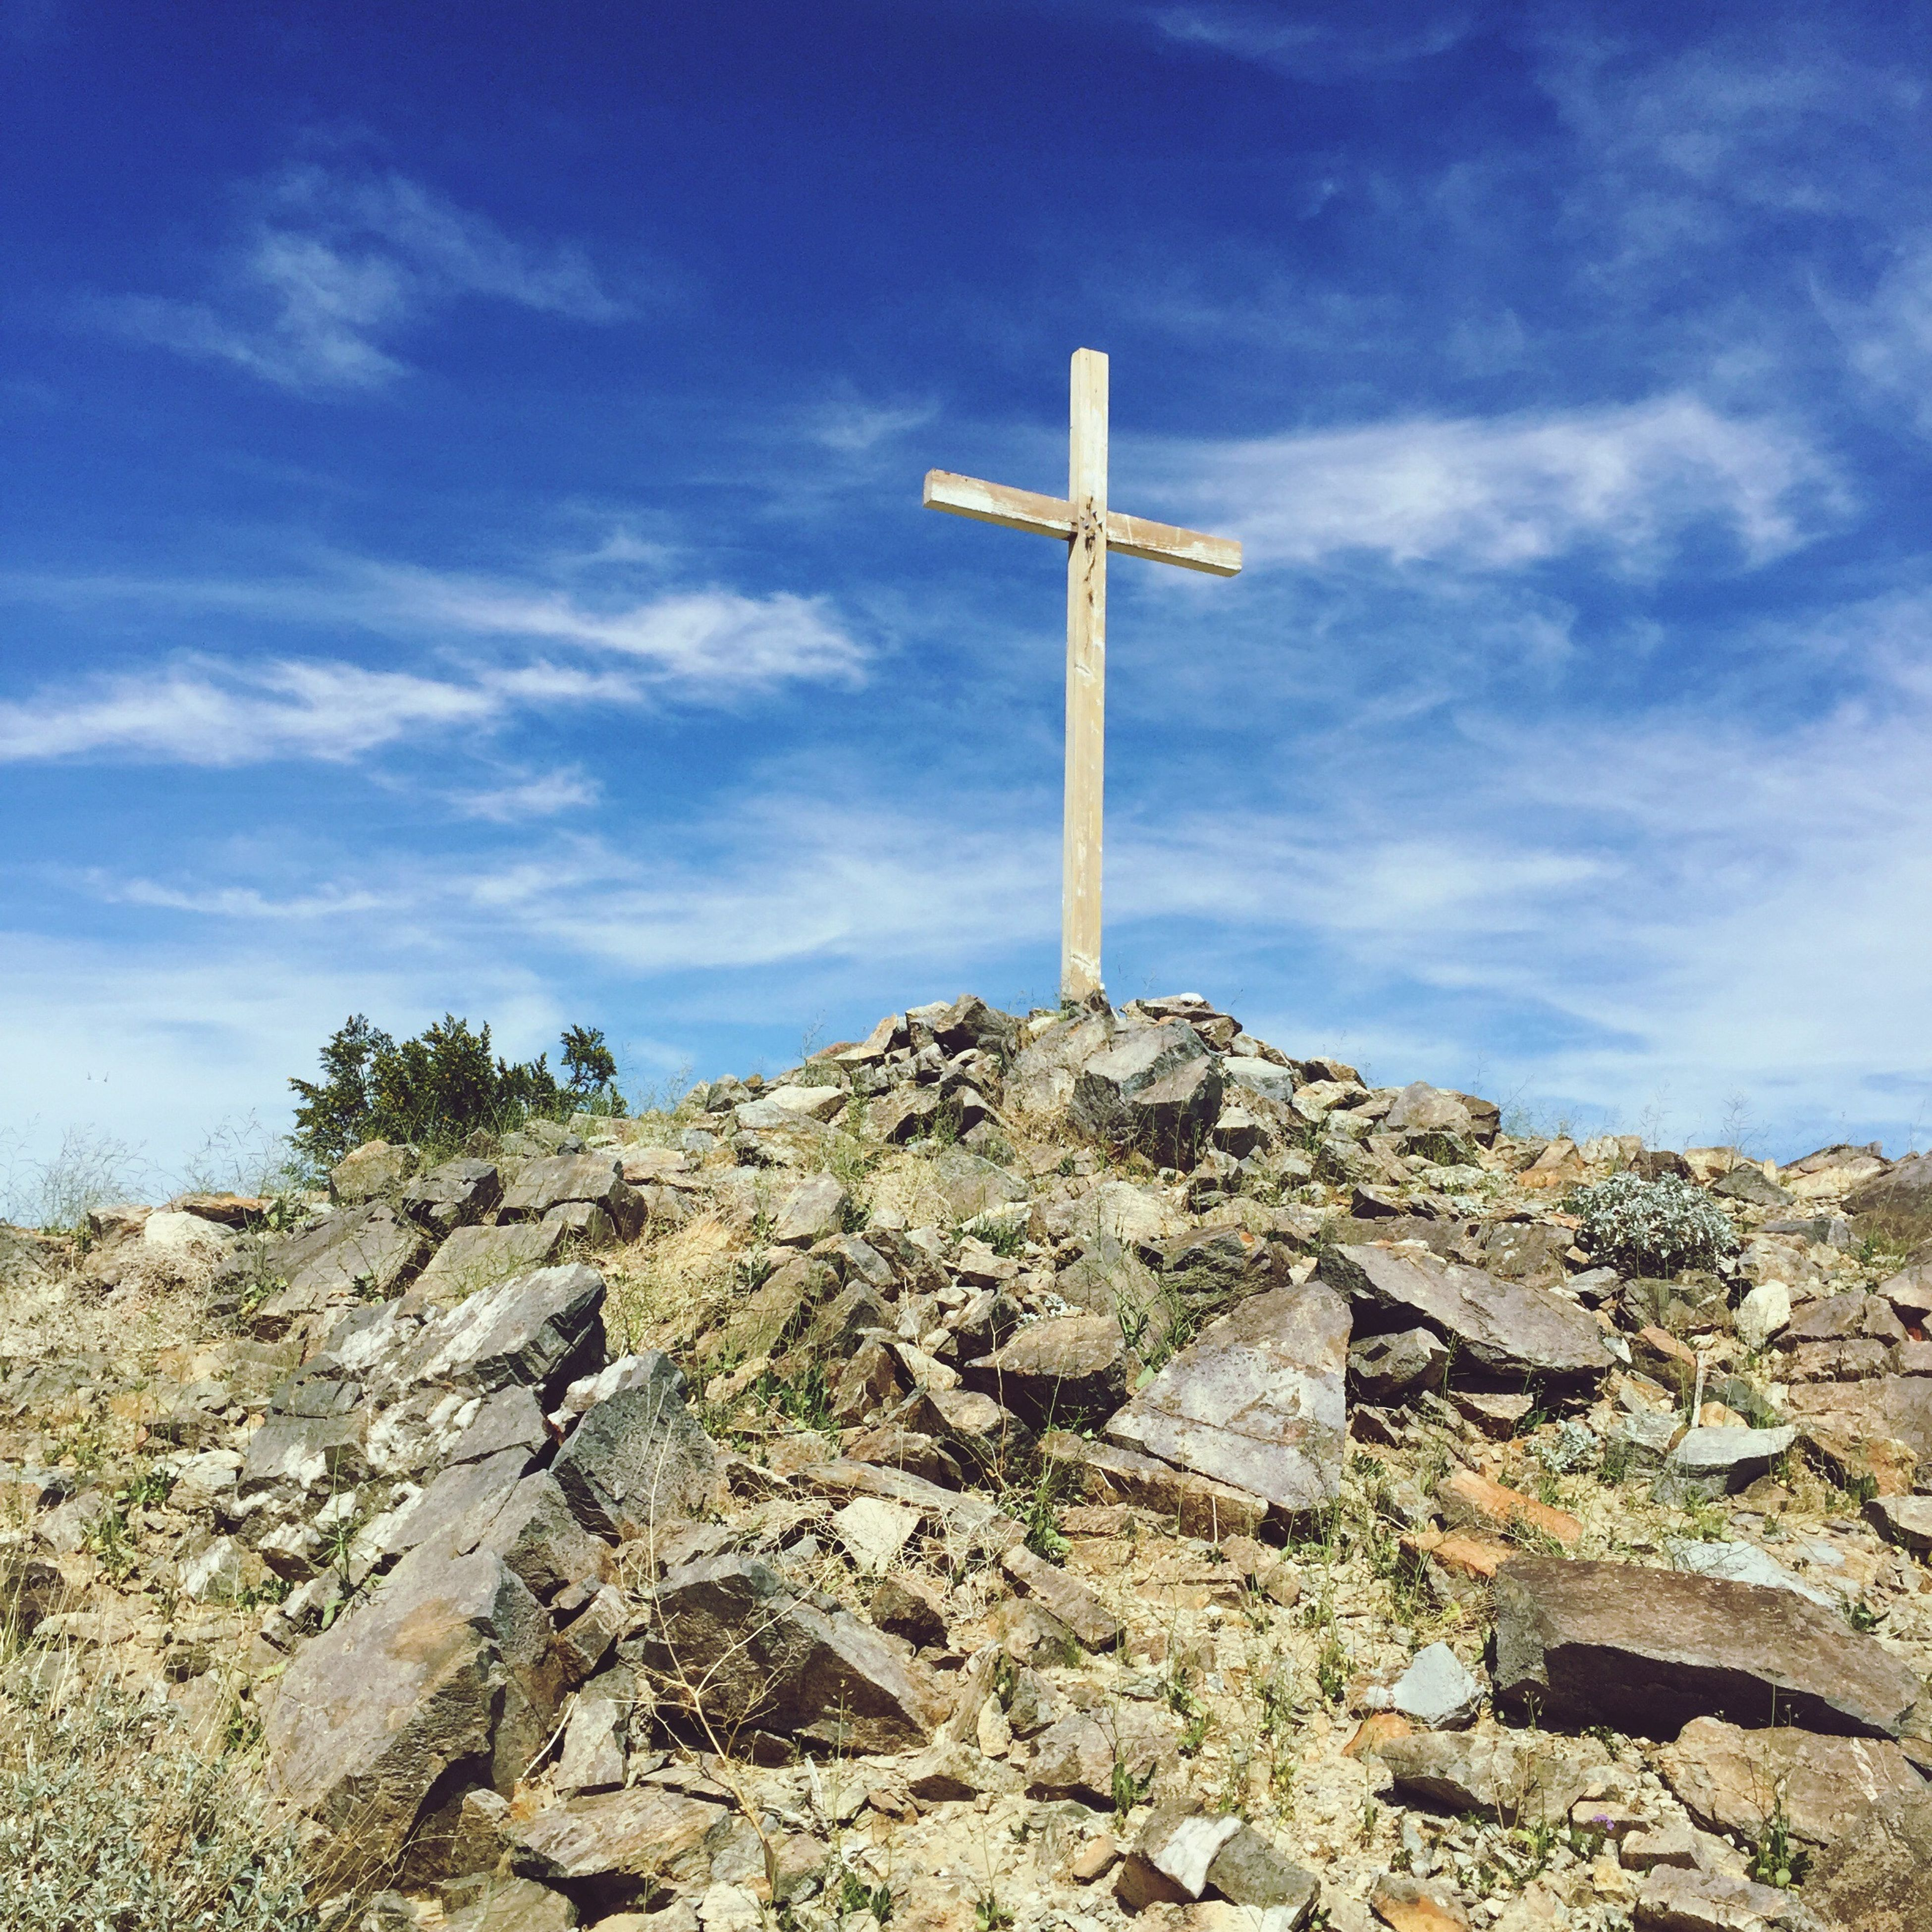 sky, low angle view, cloud - sky, tranquility, cross, blue, rock - object, cloud, nature, tranquil scene, day, landscape, mountain, spirituality, outdoors, non-urban scene, no people, scenics, beauty in nature, religion